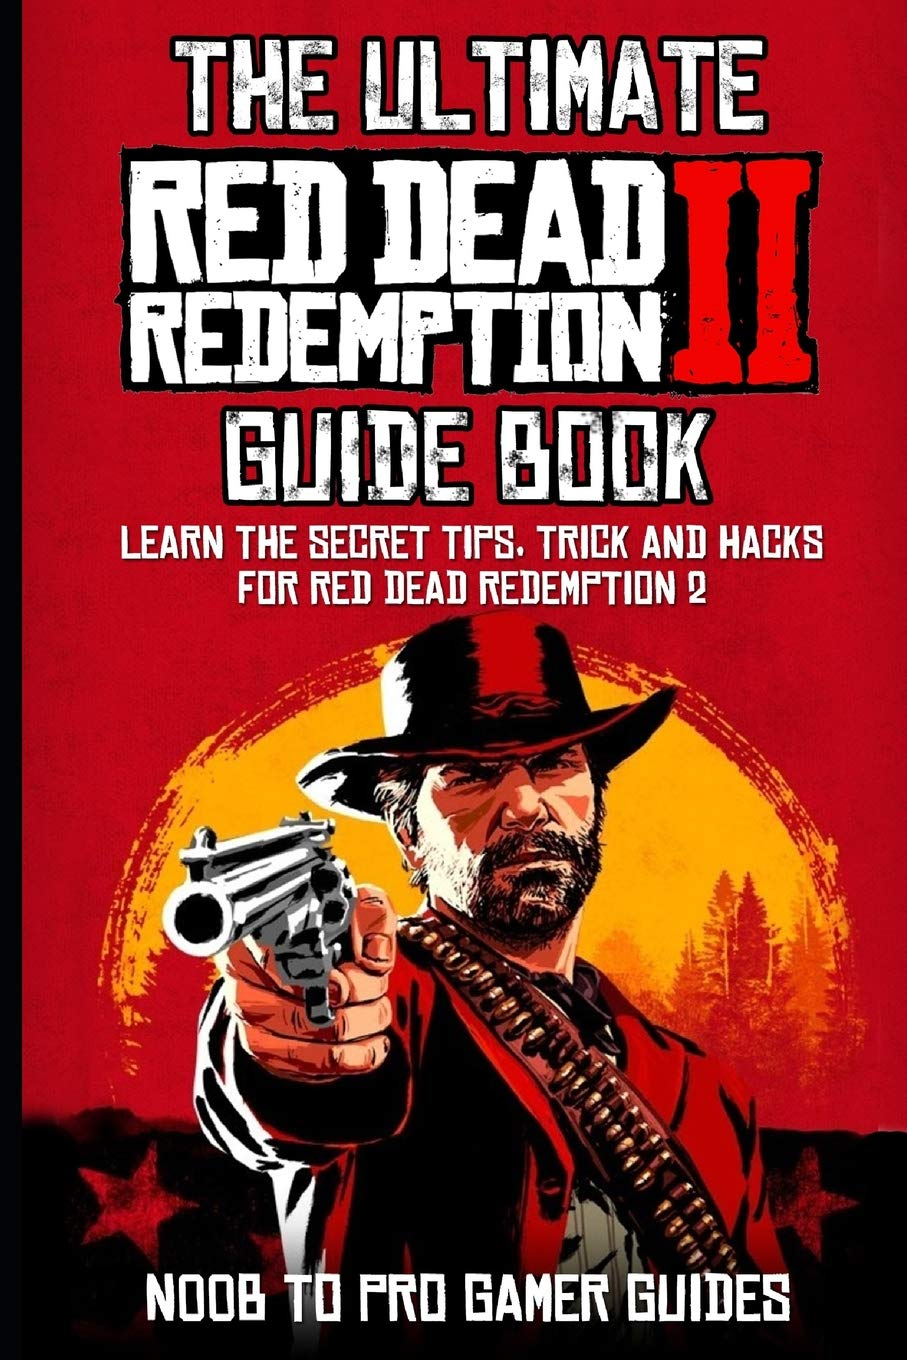 The Ultimate Red Dead Redemption 2 Guide Book: Learn the Secrets, Tips, Tricks and Hacks For Red Dead Redemption 2: Amazon.es: N00b to Pro Gamer Guides: Libros en idiomas extranjeros